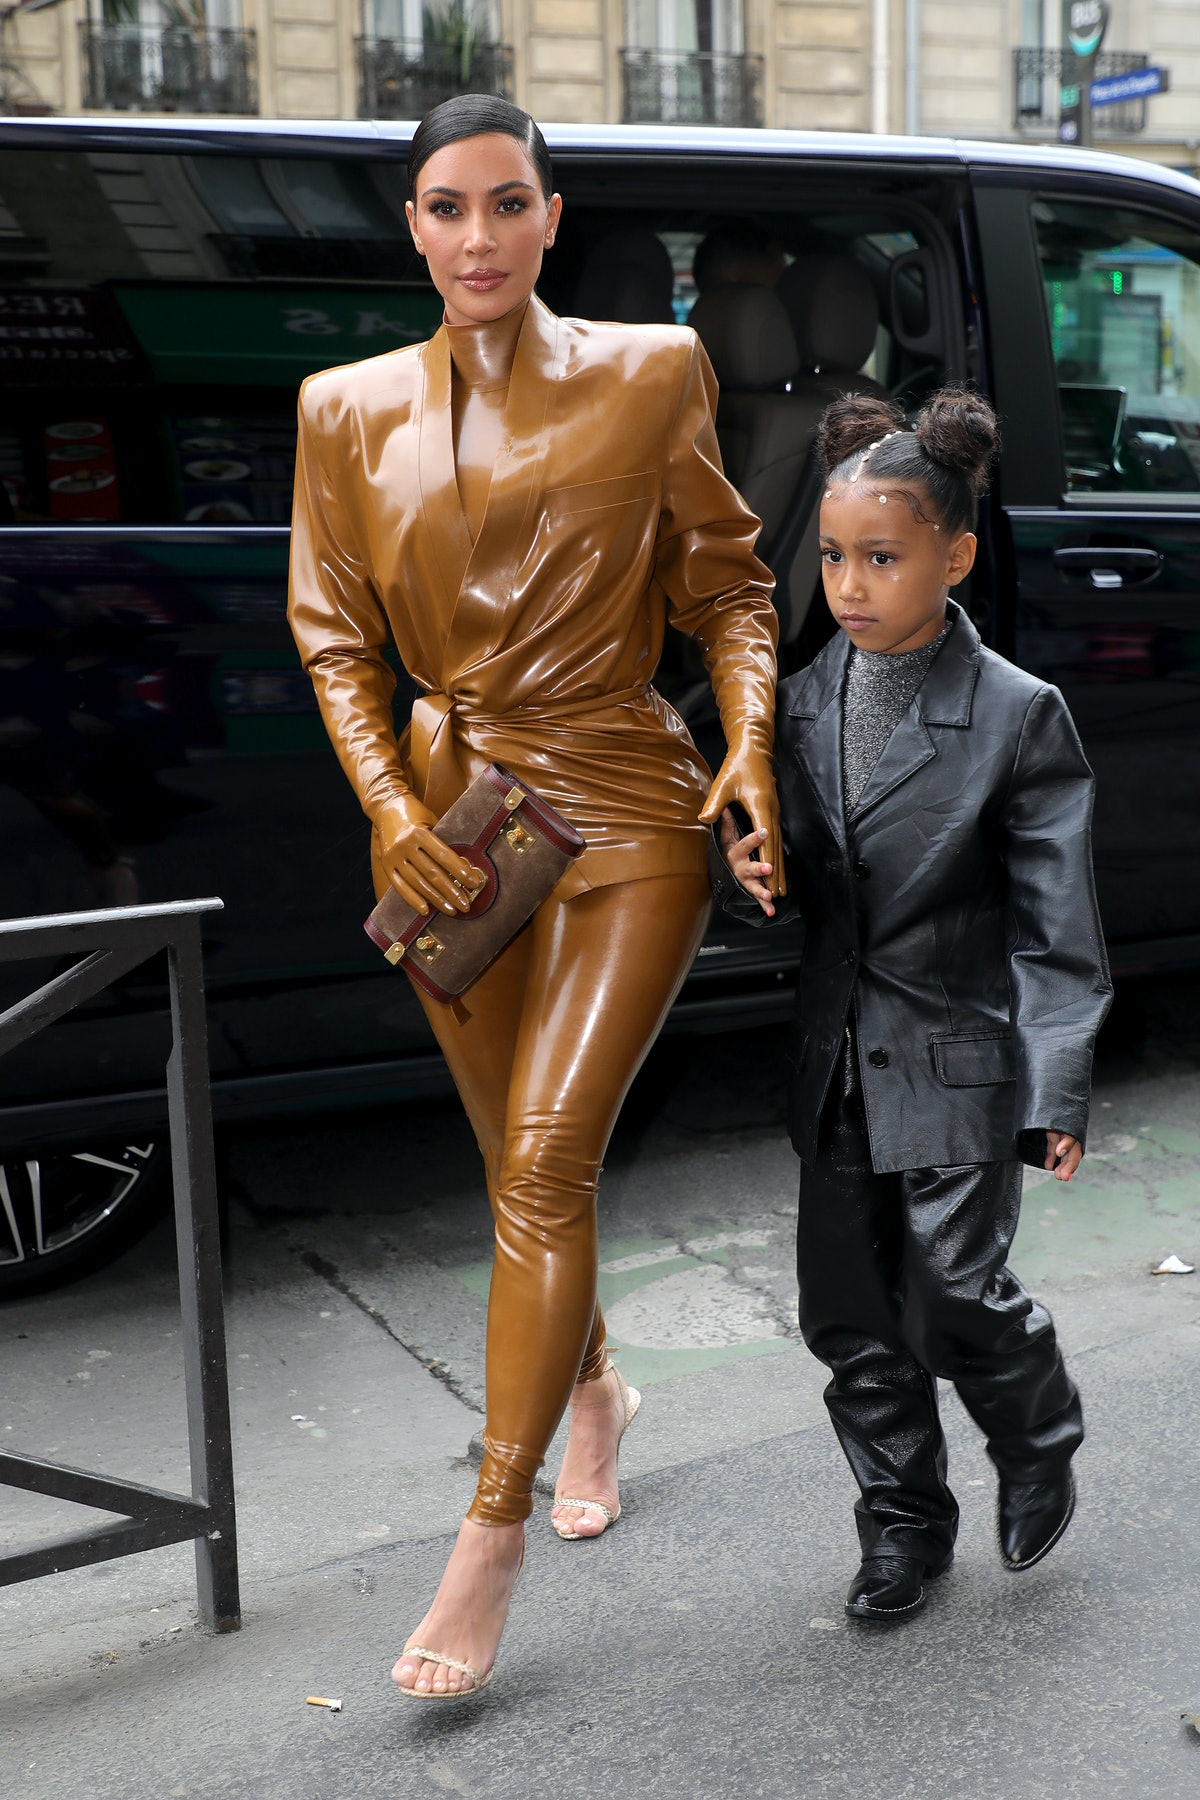 PARIS, FRANCE - MARCH 01: Kim Kardashian and her daughter North West arrive at Theatre des Bouffes du Nord to attend Kanye West's Sunday Service on March 01, 2020 in Paris, France. (Photo by Pierre Suu/GC Images)